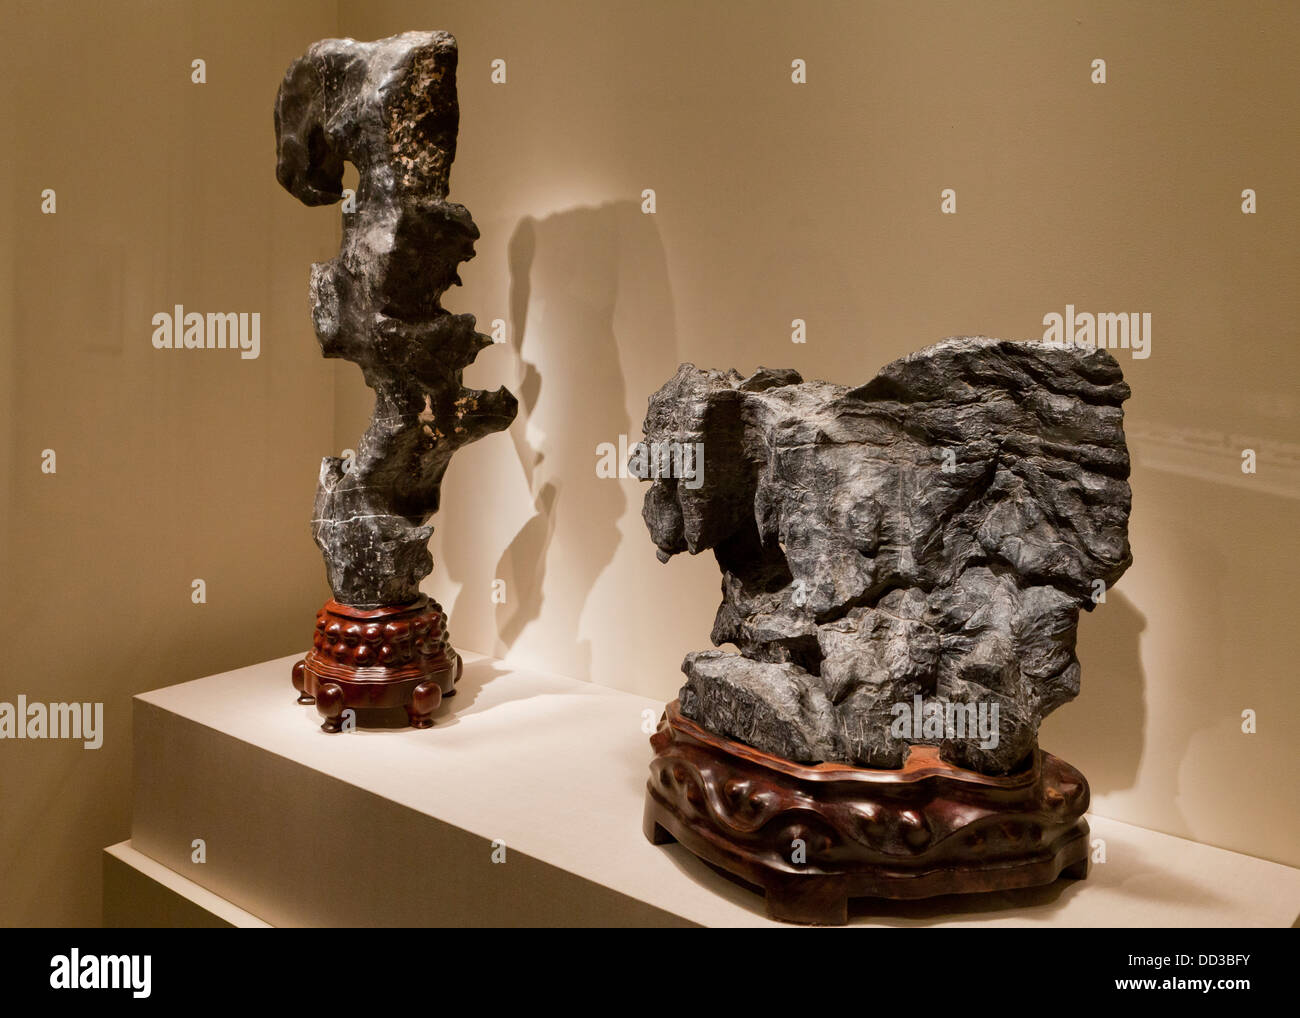 Scholar's Rocks - Qing dynasty, China, 17th century - Stock Image